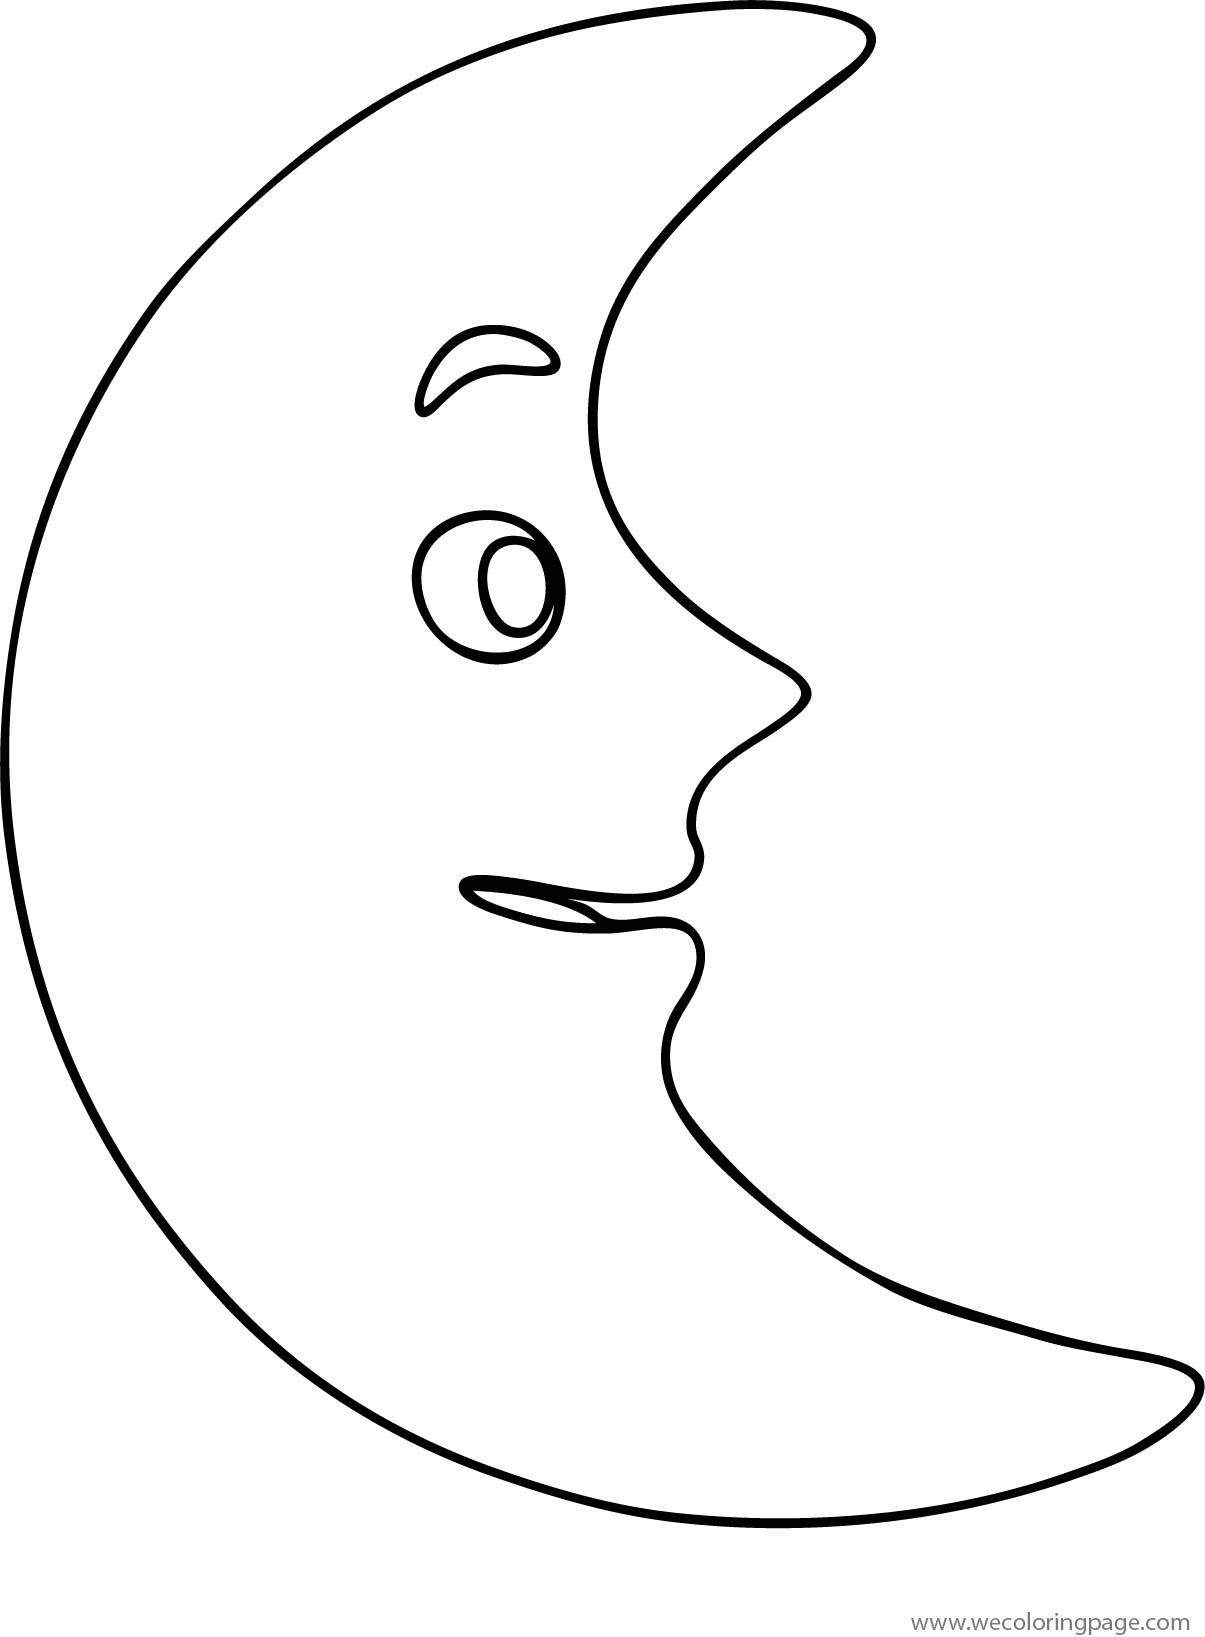 Moon Smile Coloring Page